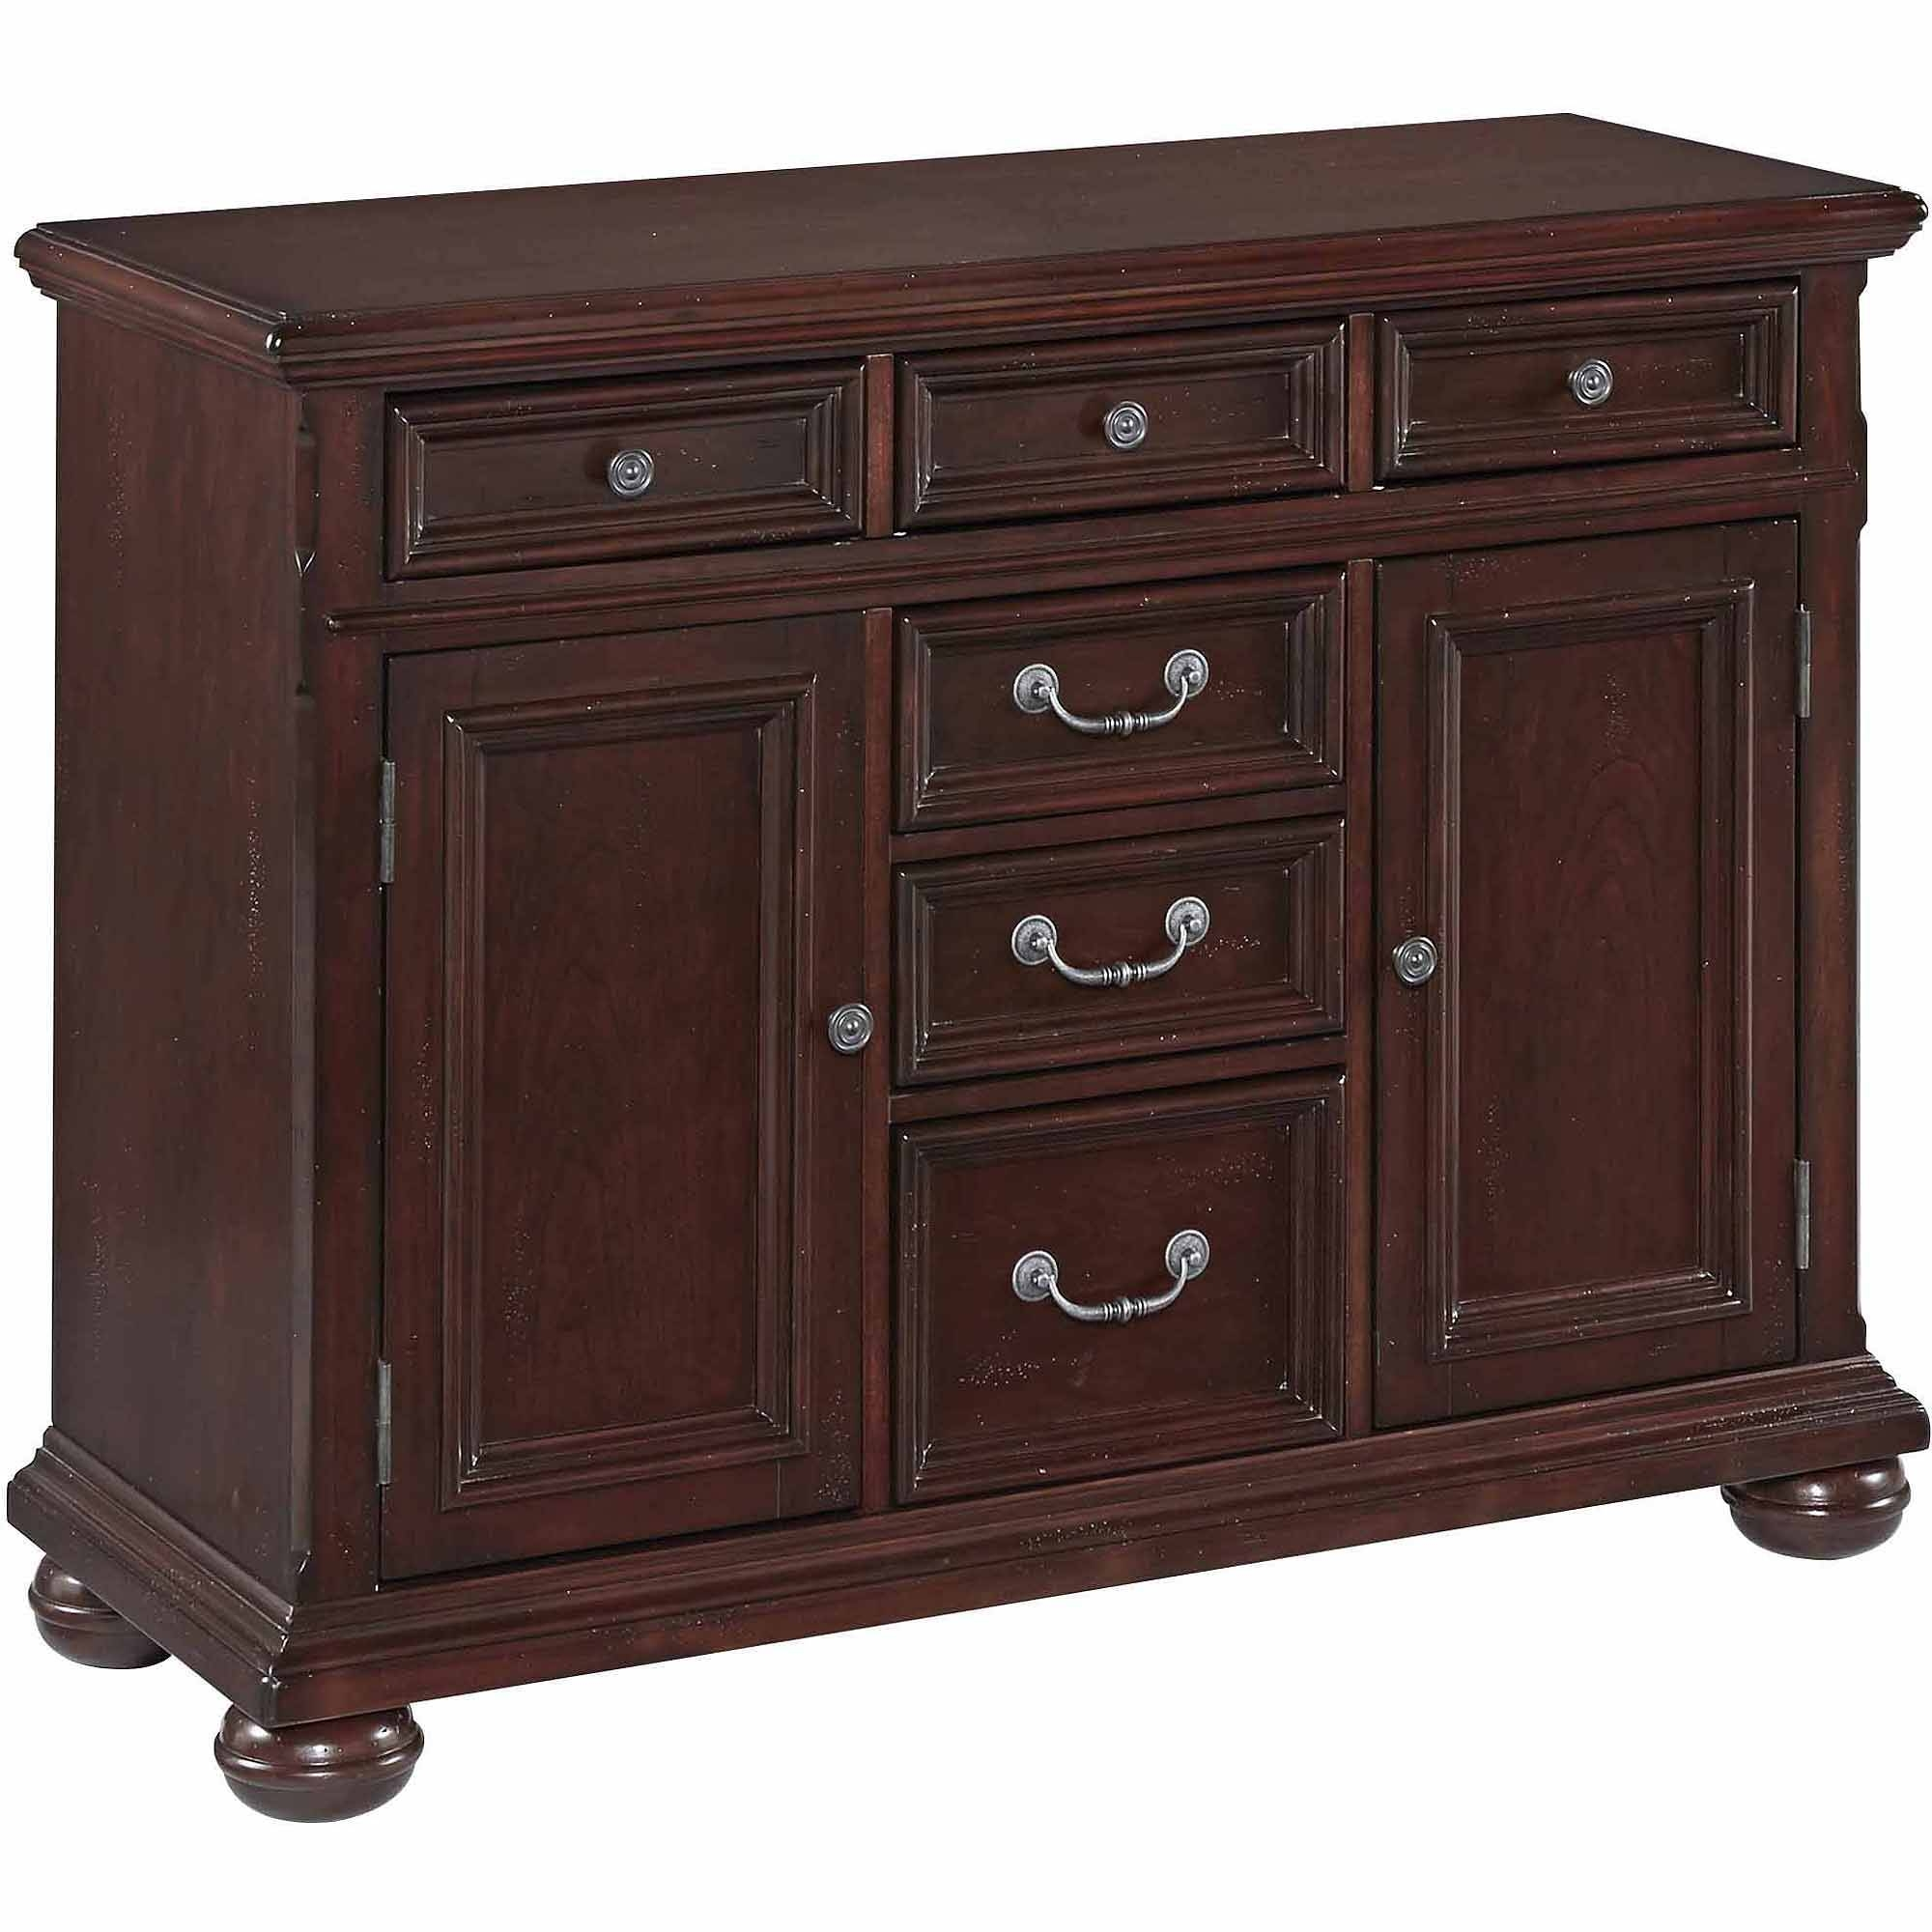 China Cabinet & Buffet Furniture : Kitchen & Dining Furniture pertaining to Light Wood Sideboards (Image 3 of 30)